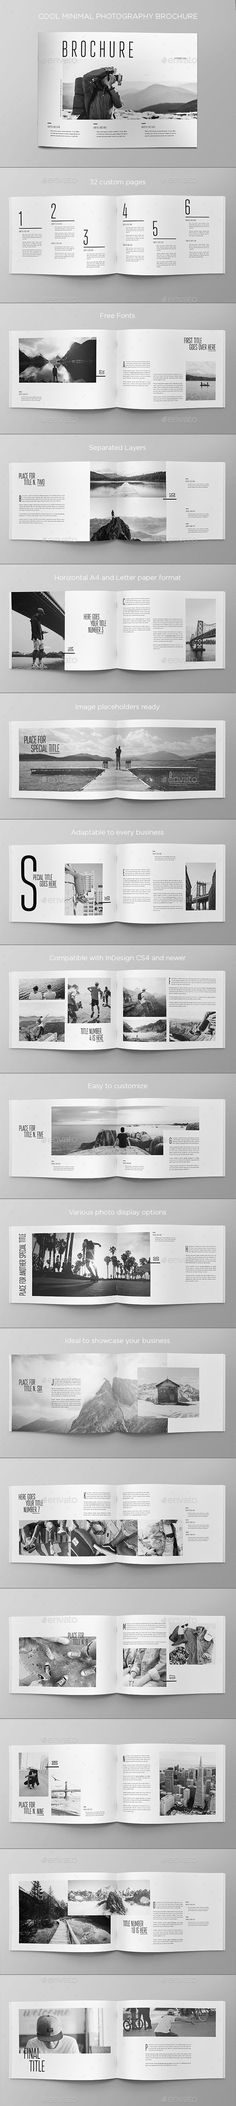 Cool Minimal Photography Brochure Template InDesign INDD - 32 Custom Pages Booklet Design, Book Design Layout, Print Layout, Book Cover Design, Design Design, Brochure Indesign, Brochure Template, Brochure Format, Adobe Indesign